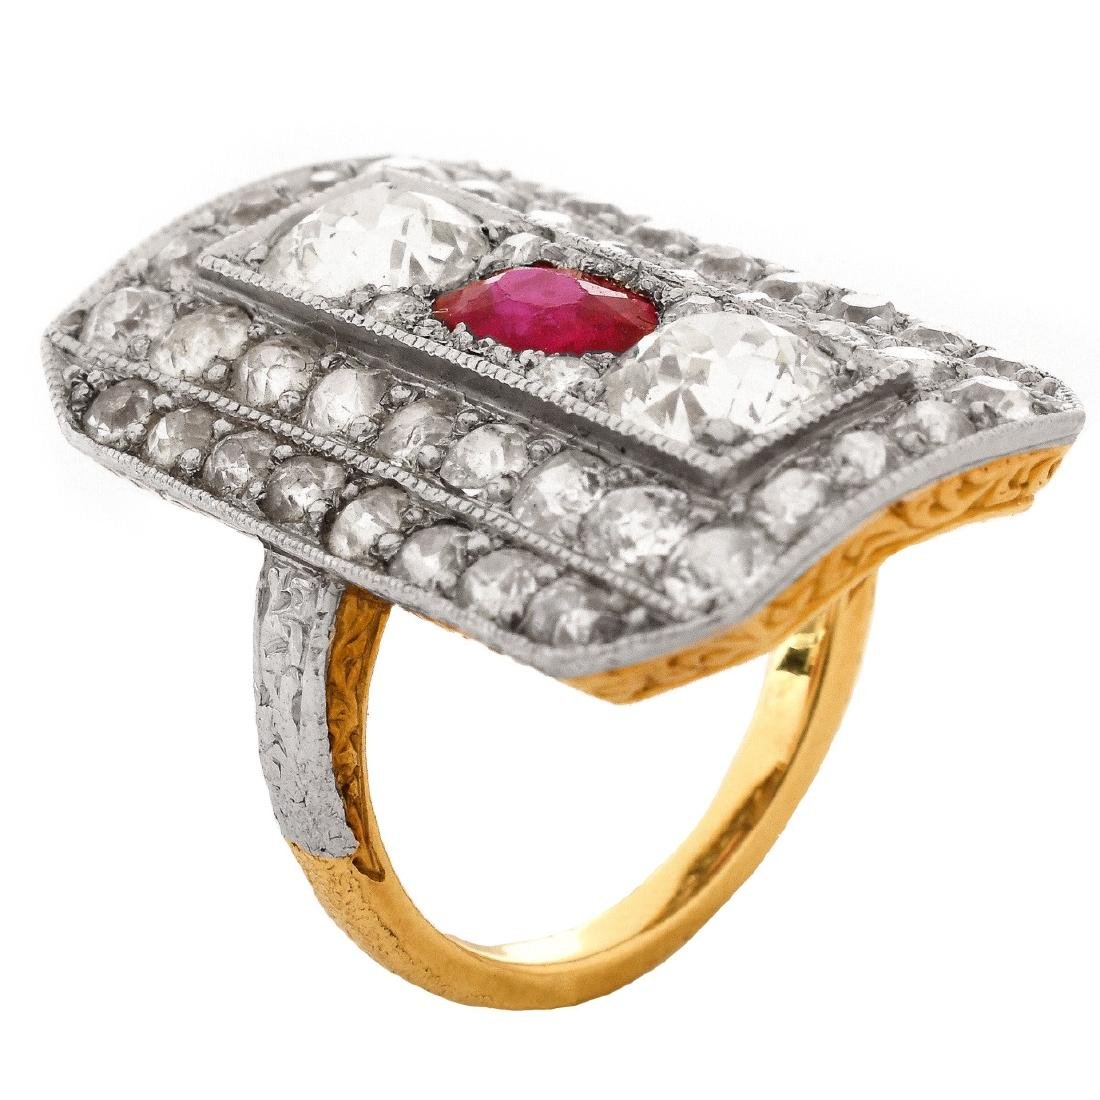 Antique Diamond and Ruby Ring